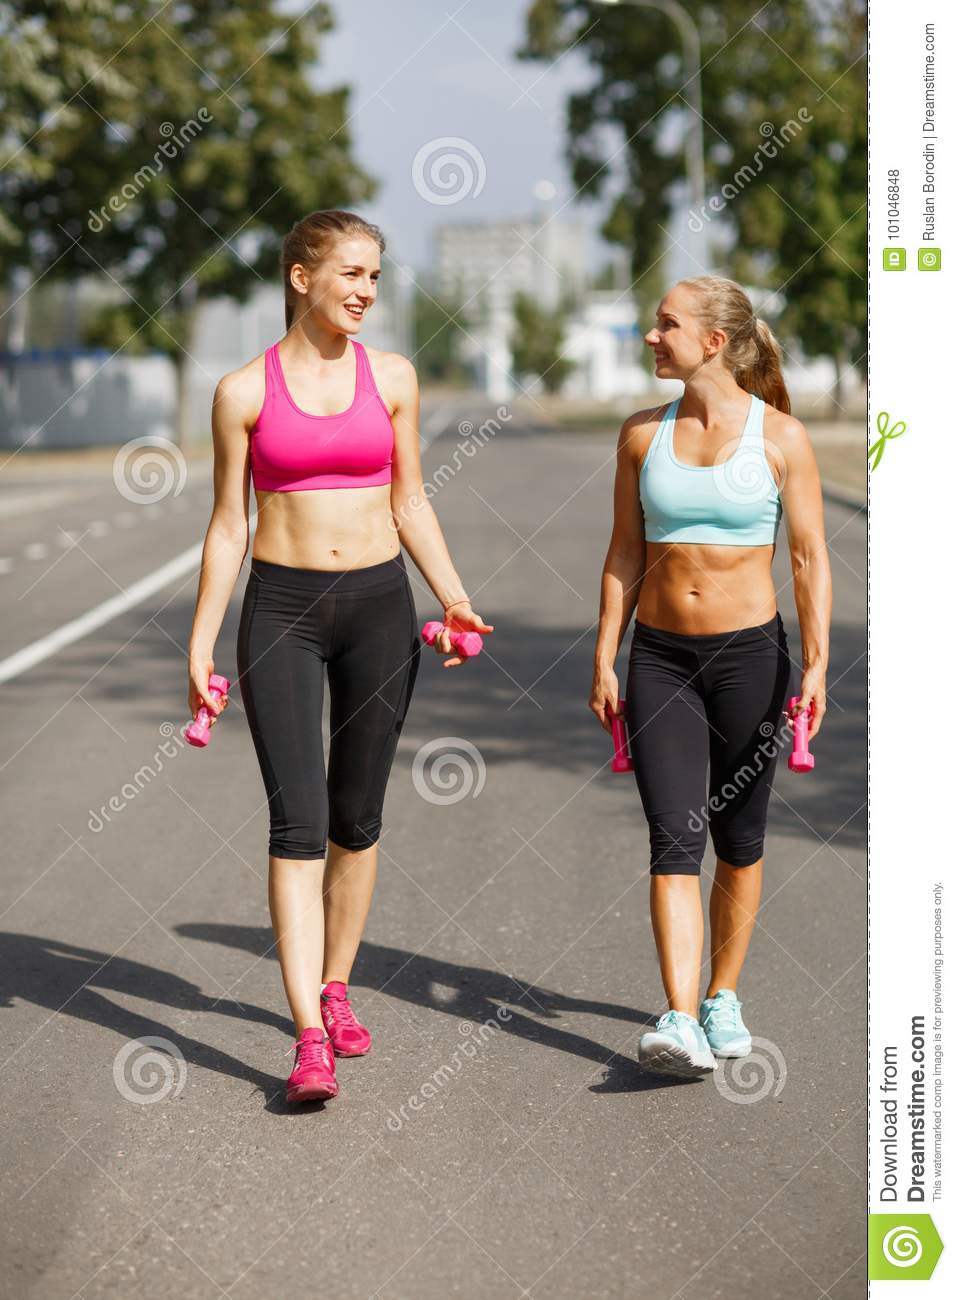 Sports Girls With Bottles Of Water Walking On A Park Background Fitness Concept Copy Space Stock Photo Image Of Healthy Outdoor 101046848